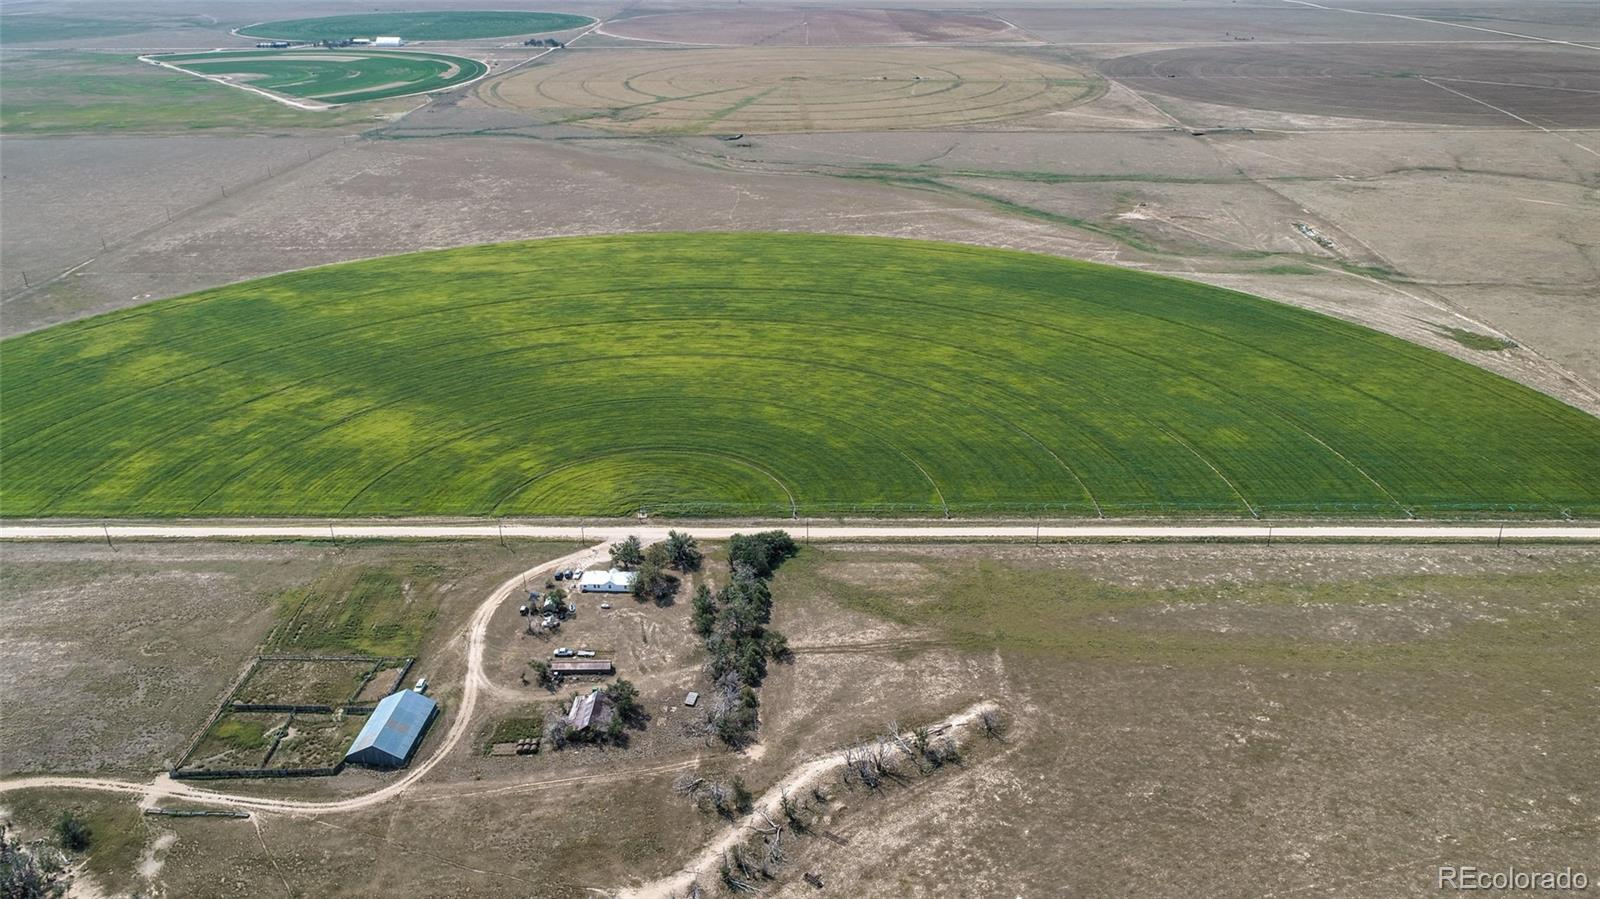 """Beautiful Ranch Located In Elbert County*Family Owned And Operated For Generations*Grazing Grassland and Irrigated Farm Ground*Approx. 430 Total Acres*203 Acres of Grassland And 227 of Irrigated Ground Included In The Listing Price, But If You Want A Bigger Ranch/Farm All You Have To Do Is Ask, There Is Potential For Up To 2000 Acres Available For The Ranch If You Want A Bigger Ranch*Approx 300 Acres of """"Horse Creek"""" Creek Bottom If You Want To Buy More Acres*Mule Deer and Antelope Hunting on The Ranch *Irrigation Pivots and Equipment In Place*Great Option To Grow Your Irrigated Crop Of Choice*Seller Has Planted Several Different Crops Over The Years*Oats Have Been Already Planted and Corn Is Being Planted For 2021 Harvest* *Water Rights INCLUDED IN THE SALE*Farm House (currently tenant occupied) For Your Hired Hand or Your Rental Income*Build Your Dream Home and work on the Ranch*Outbuildings*Corrals Are In Great Shape*Property is Fully Fenced and Cross Fenced And Fencing Is In Good Condition*Seller Has Taken Great Pride In This Ranch For Many Years, So The Ground And The Irrigation Equipment Is In Great Condition*Ranch Can Be Sold In Several Different Ways*Great Location, approx 45 minutes to Colorado Springs, 90 Minutes to Denver*There Is To Many Options To List For This Ranch*What Do You Want To Buy?*"""